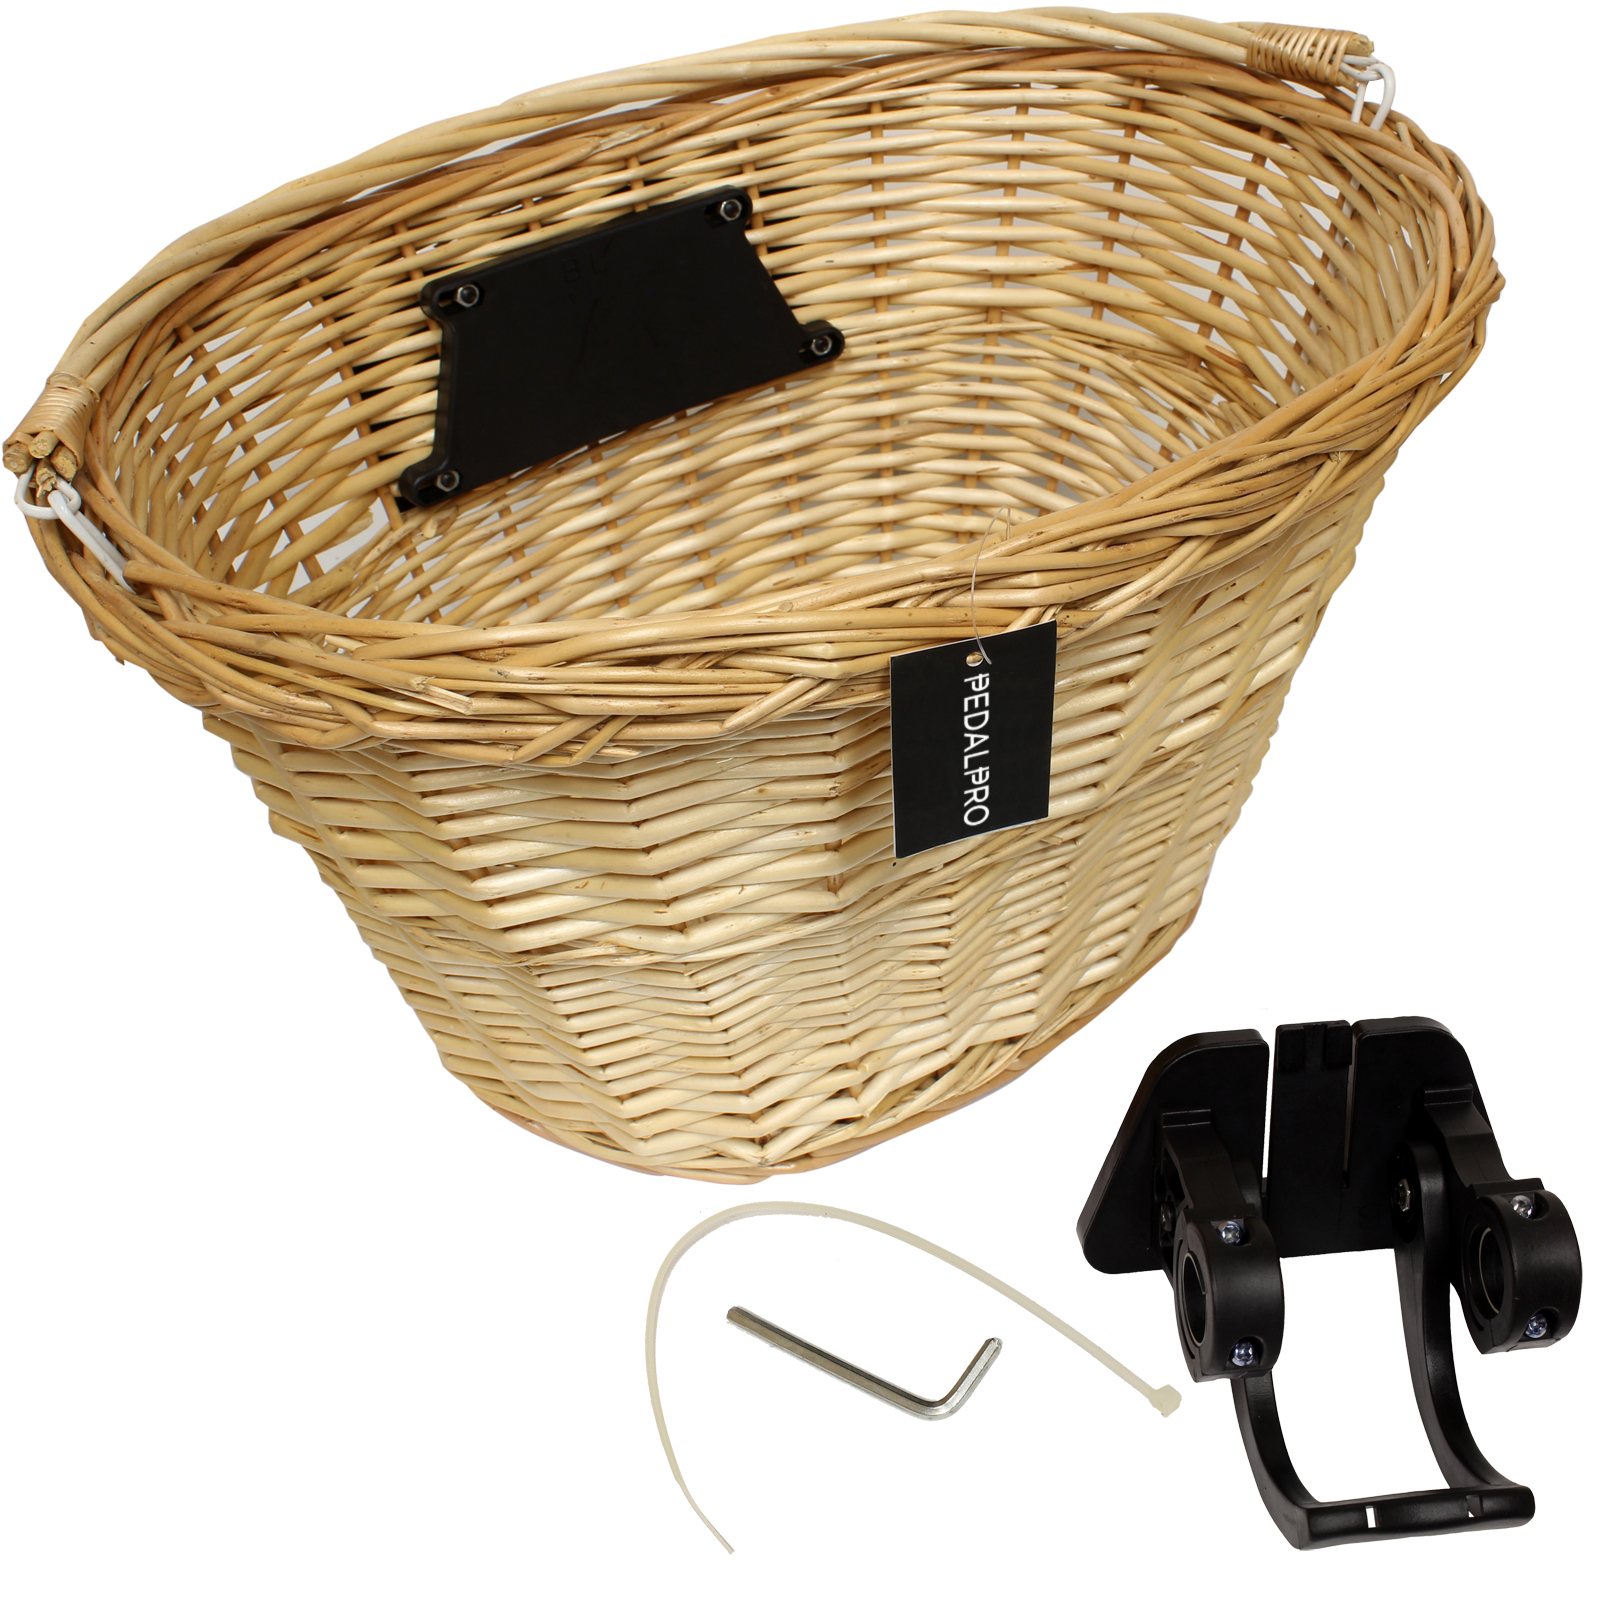 Wicker Bicycle Basket With Handle : Pedalpro quick release bicycle wicker ping basket